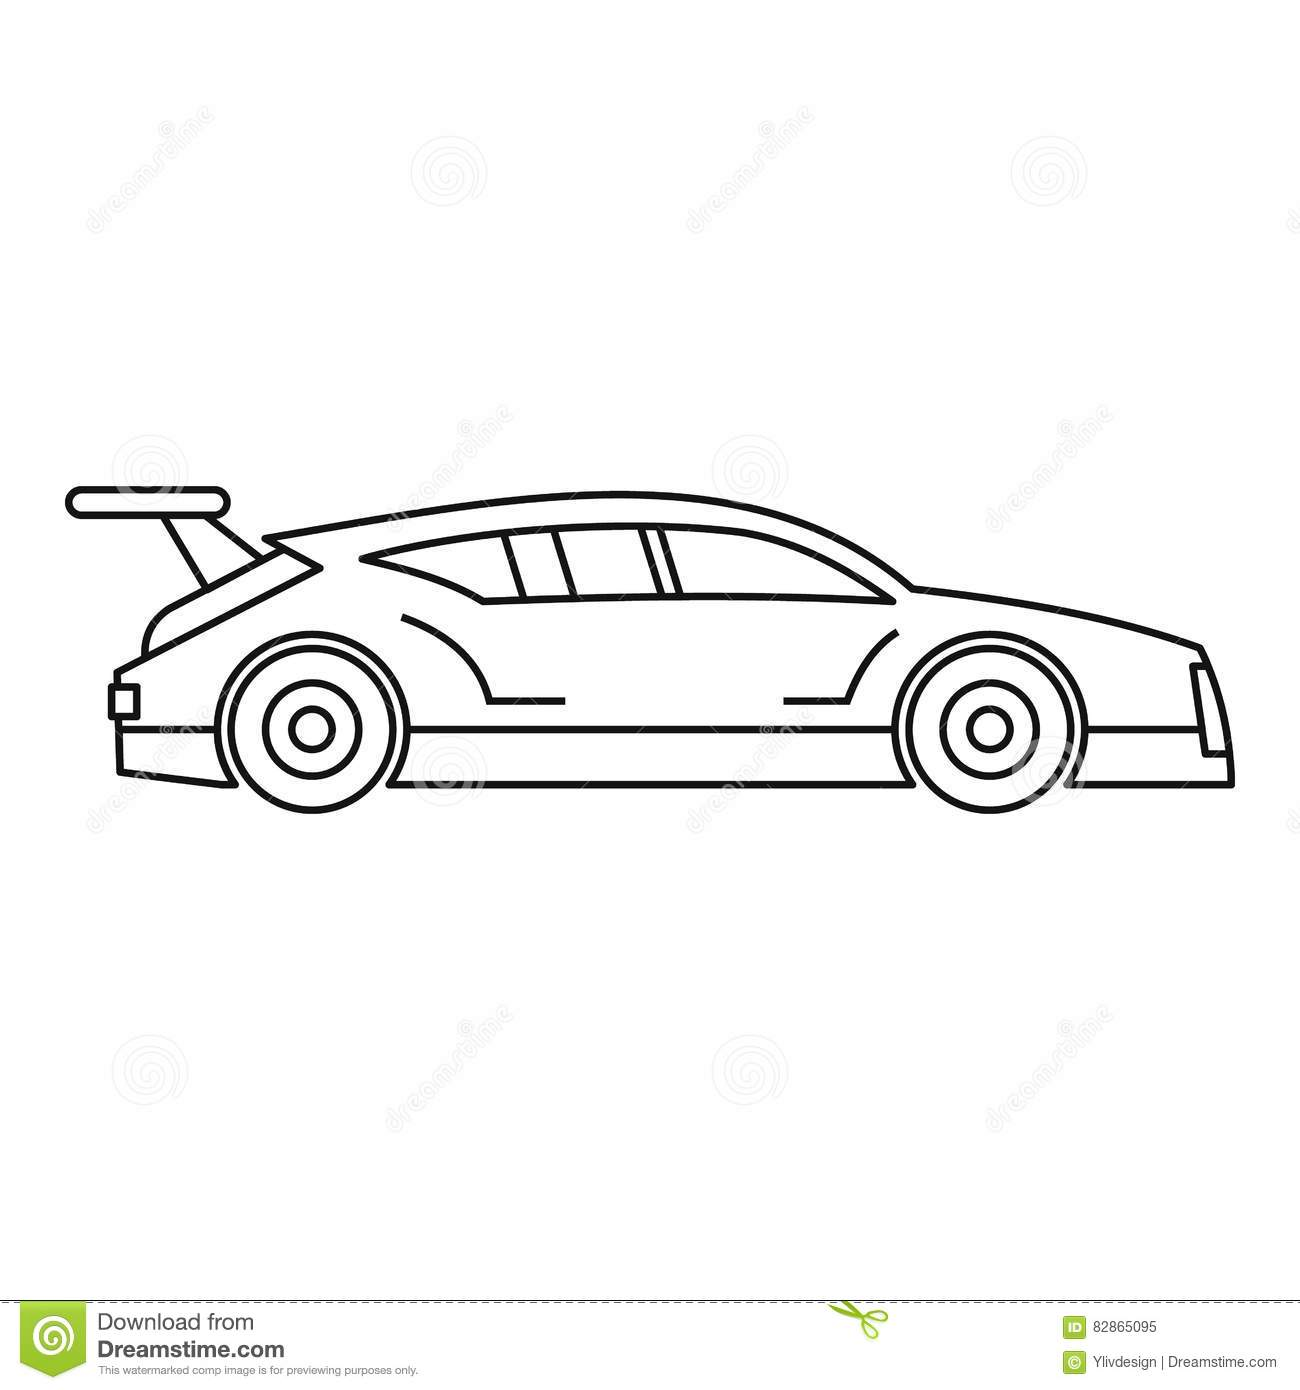 icon of a fast racing car in motion cartoon vector cartoondealer